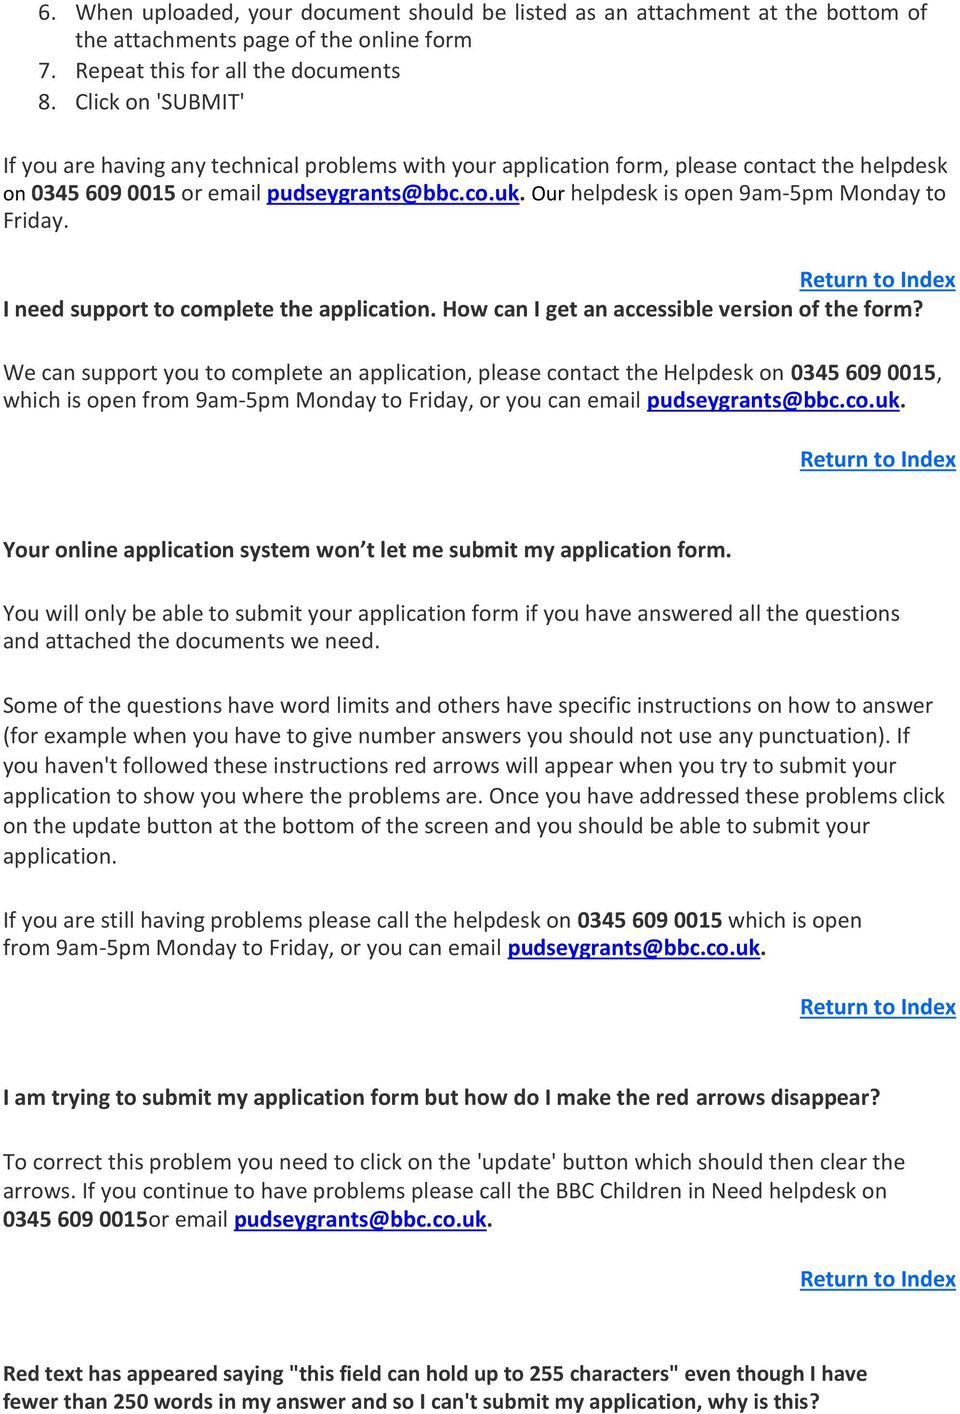 Our helpdesk is open 9am-5pm Monday to Friday. I need support to complete the application. How can I get an accessible version of the form?